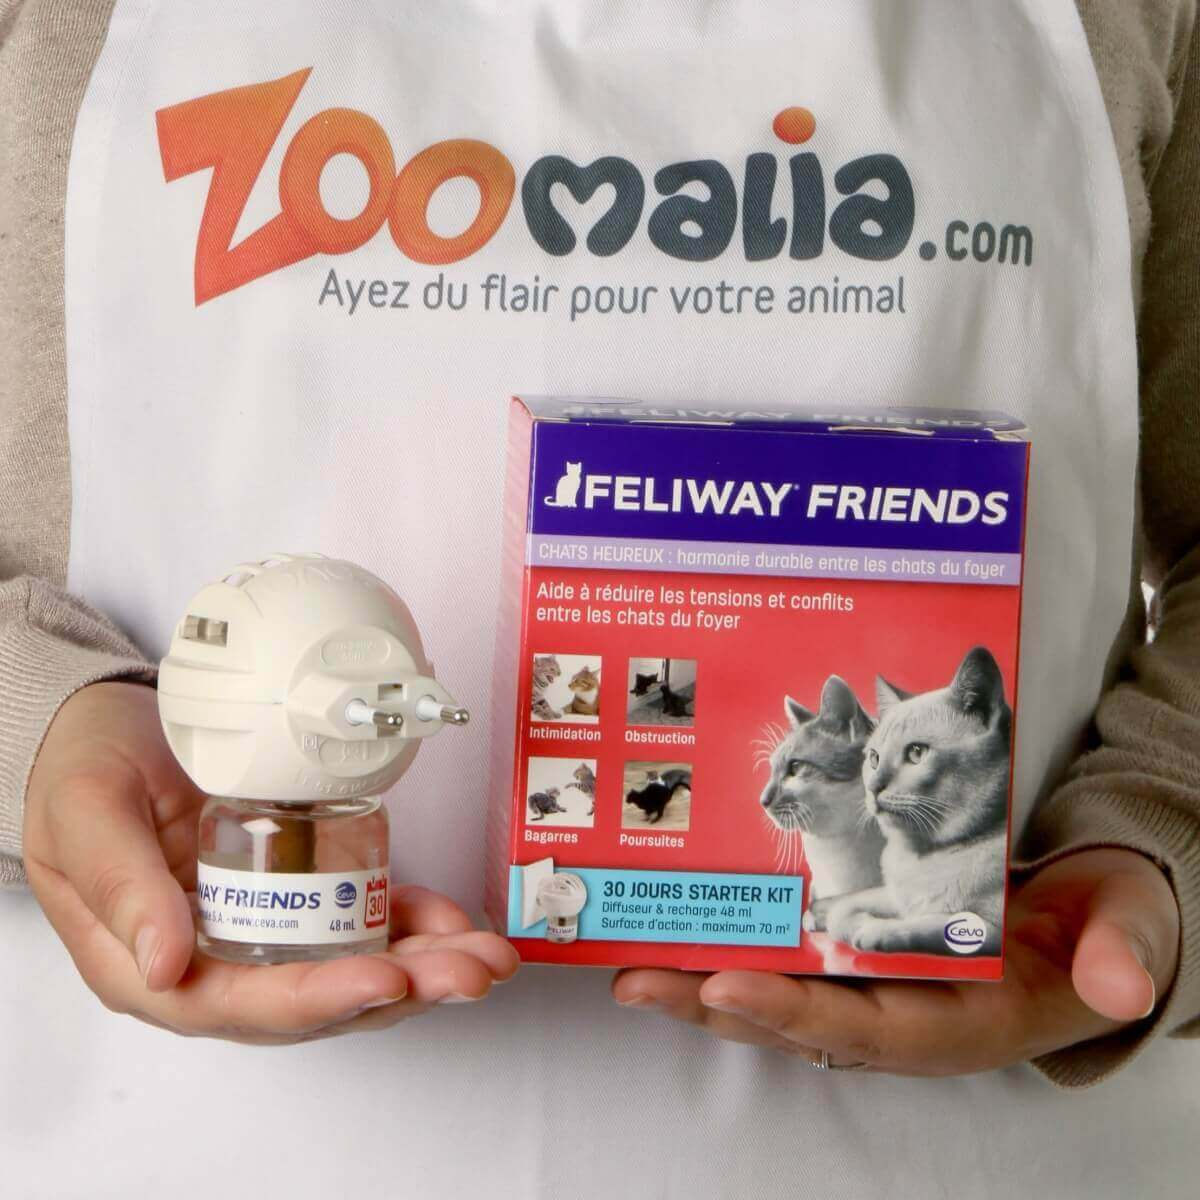 FELIWAY Friends Diffuseur - Facilite la cohabitation entre chats_6